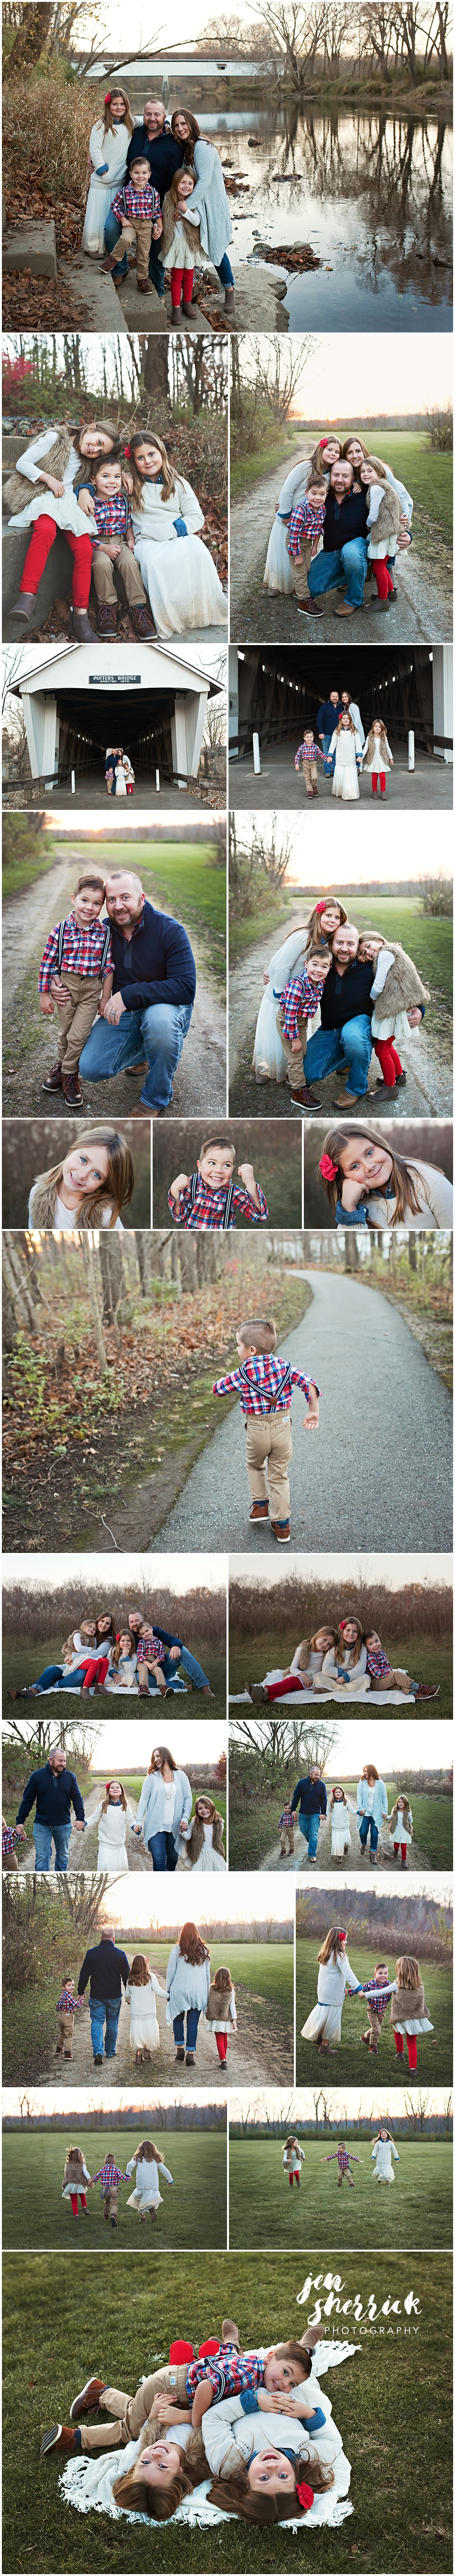 collage of family in urban setting